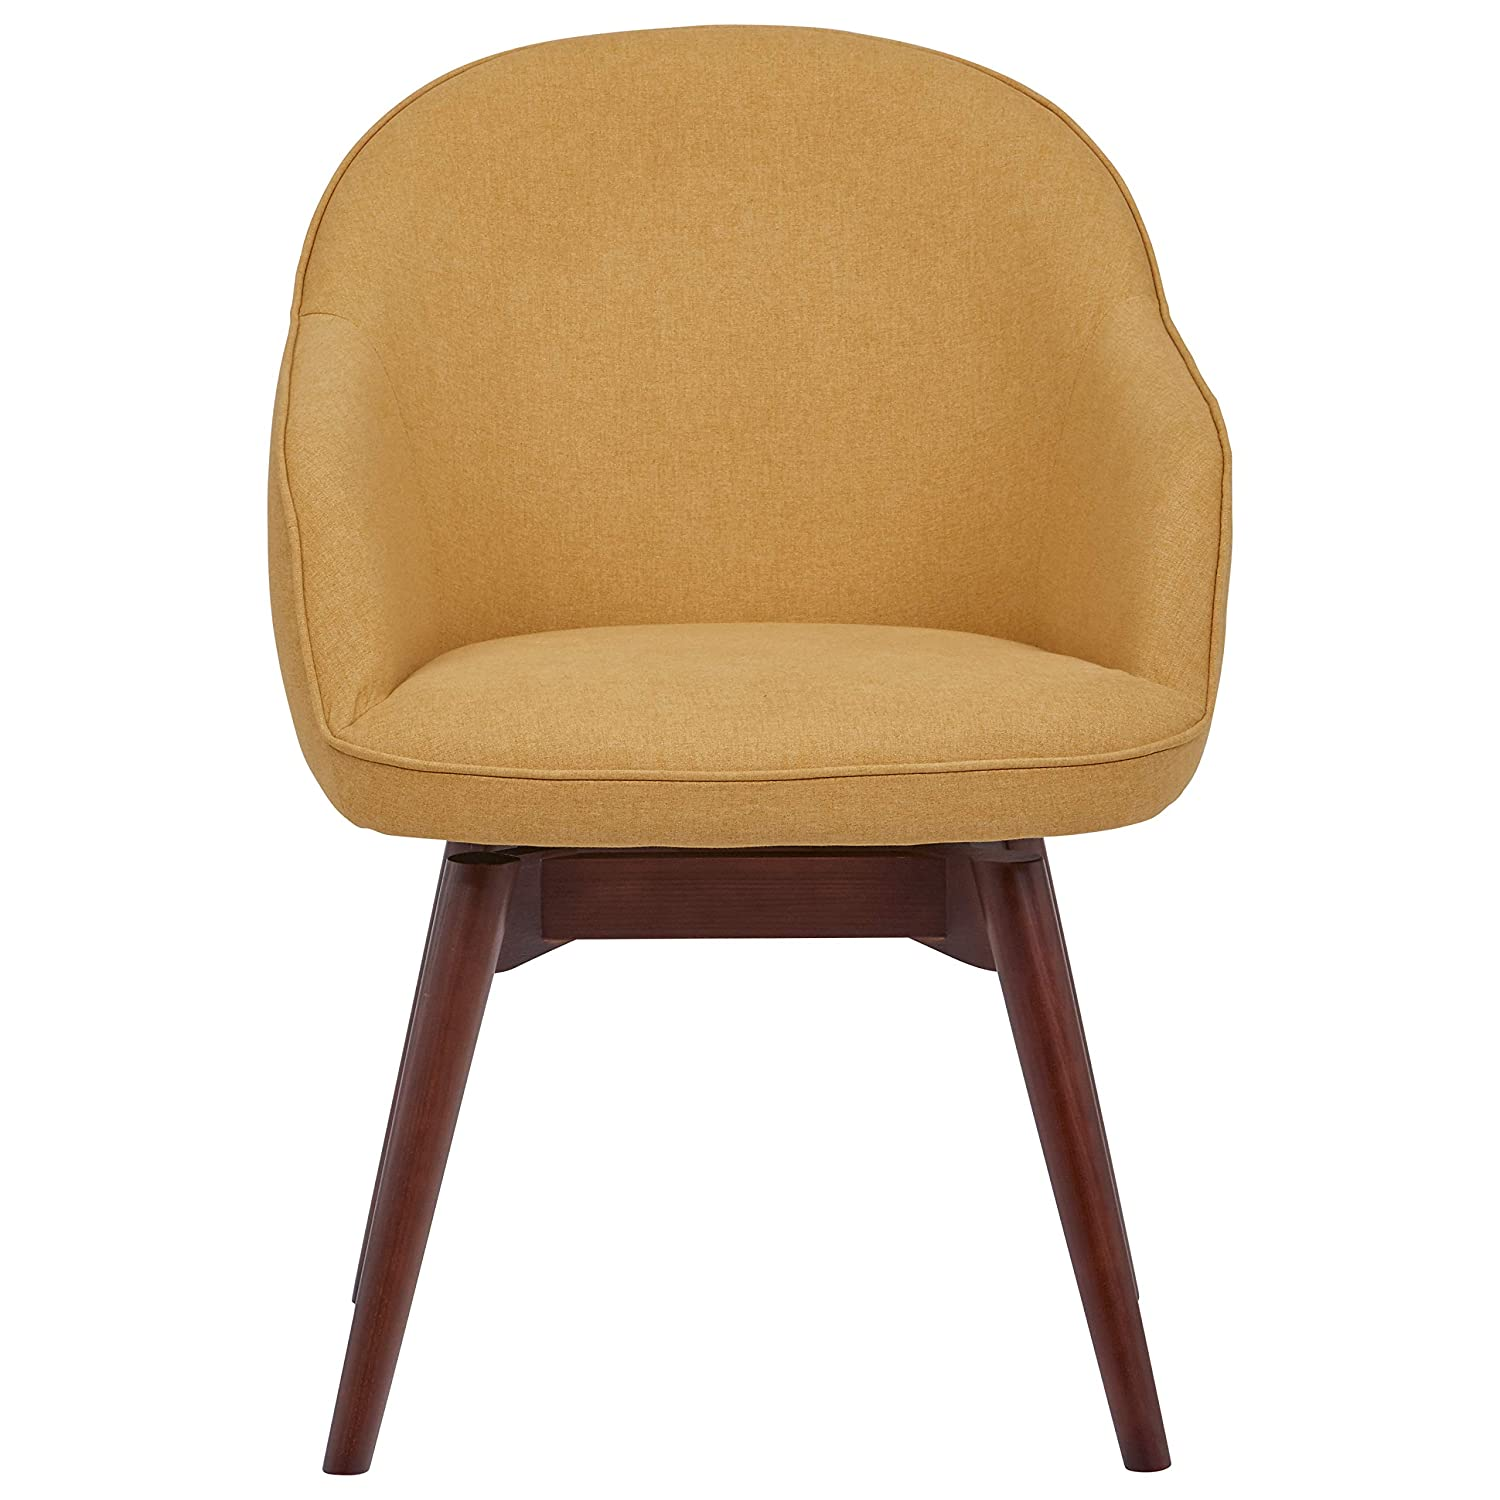 Rivet Vern Contemporary Dining Chair 32 H, Maize Canary